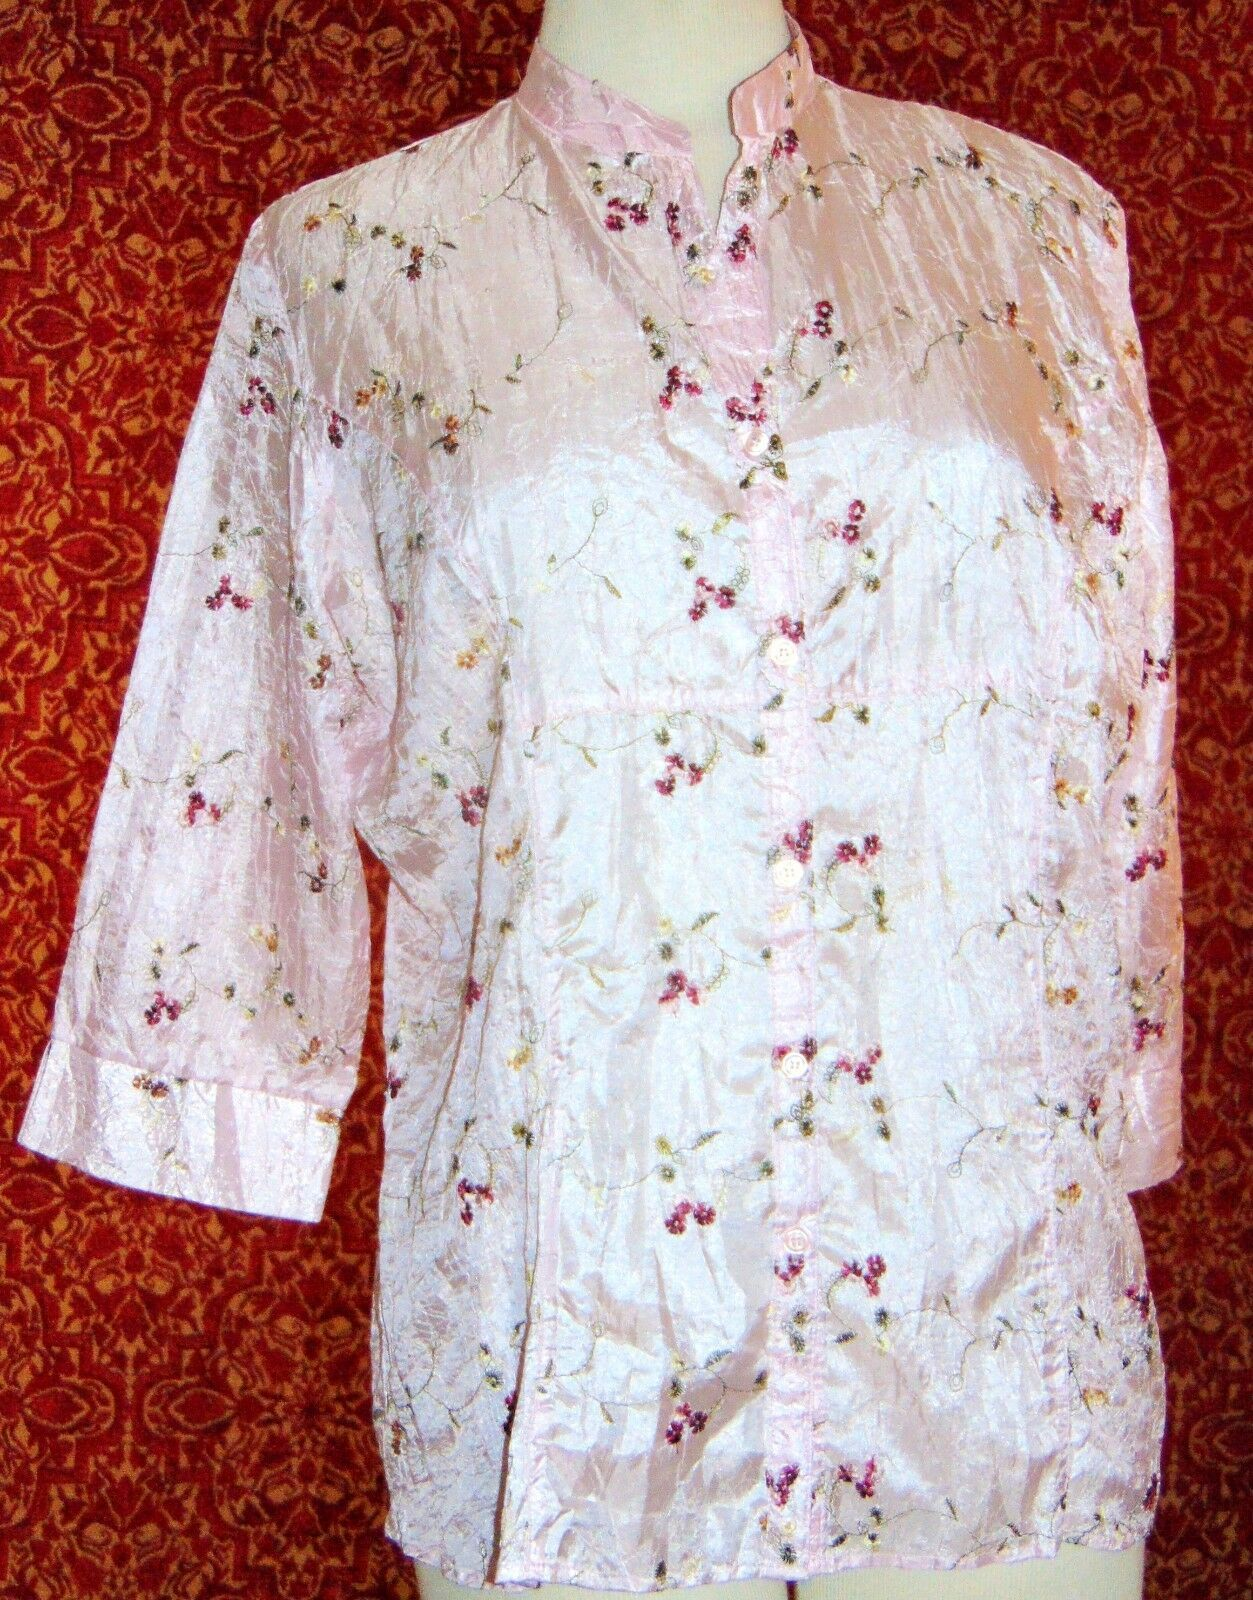 CLAUDIA RICHARD pink floral polyester 3/4 sleeve button blouse M (T43-04E9G)